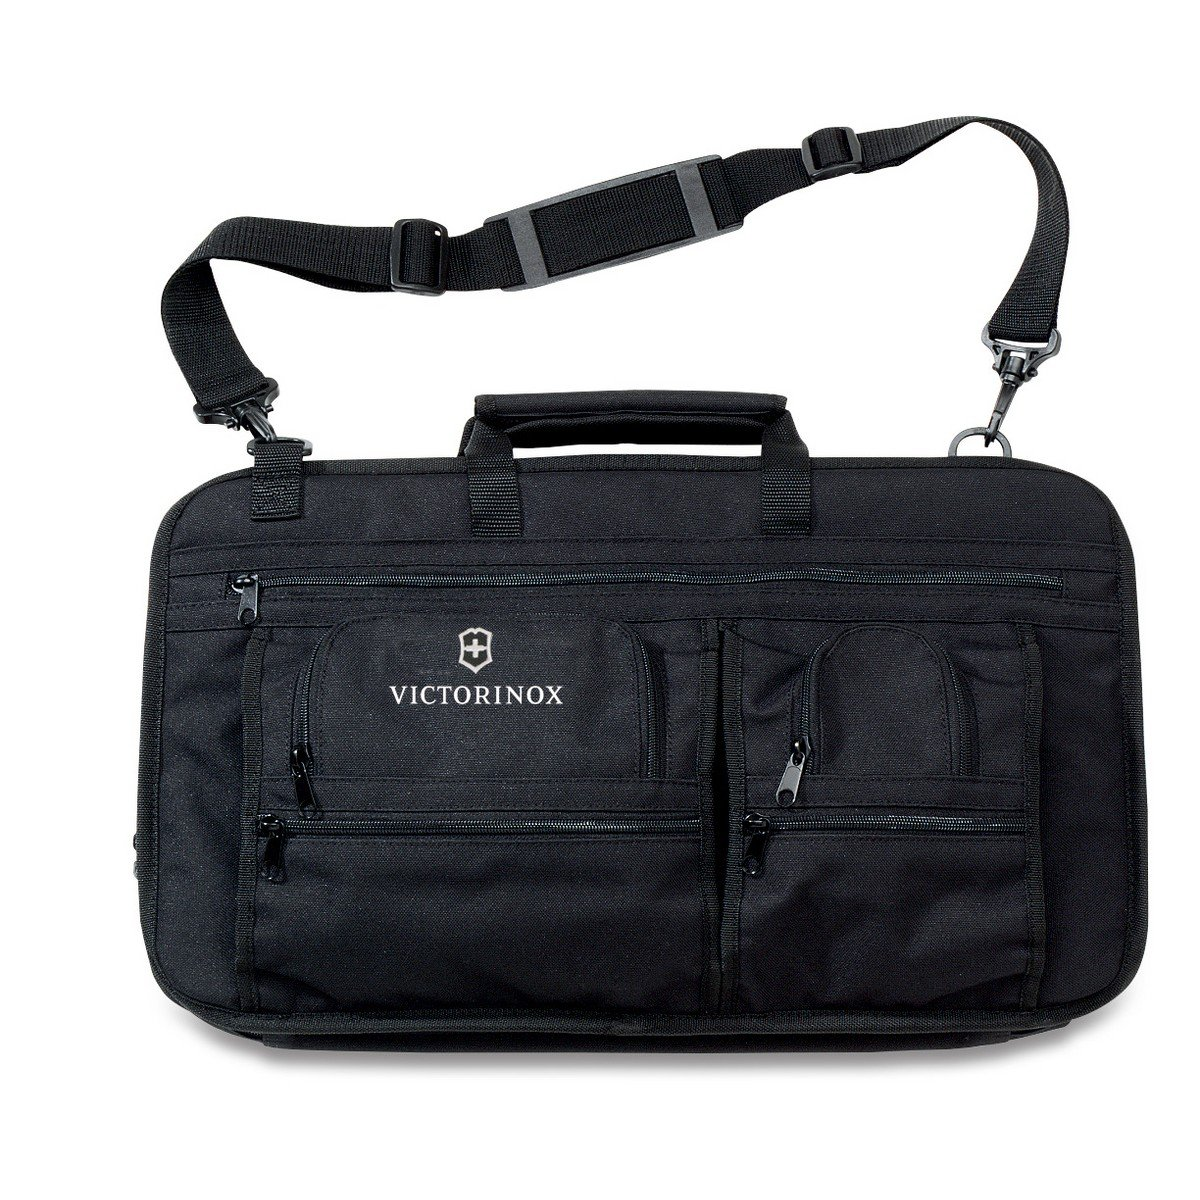 Victorinox Executive Knife Case for 12 Knives, Black